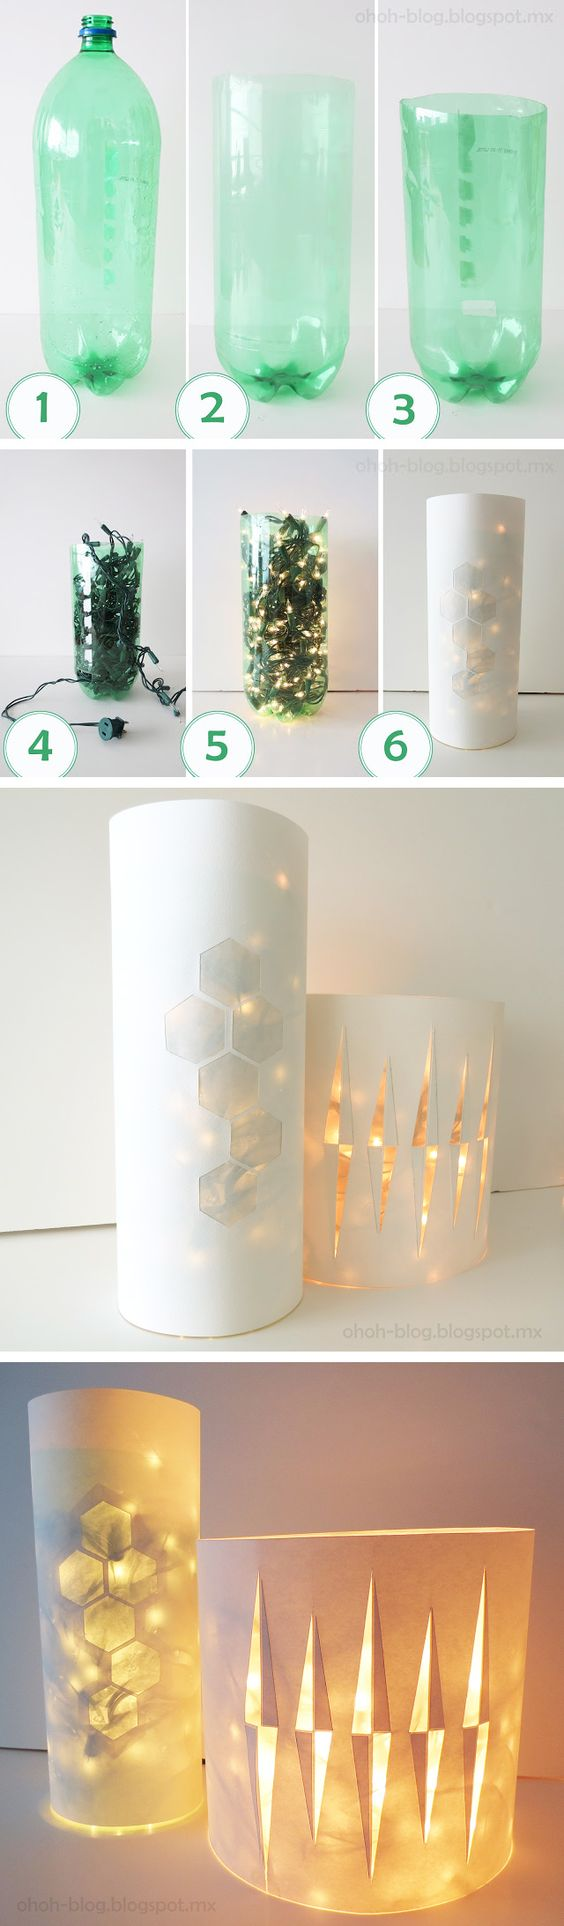 Recycled Plastic Bottle Lamp Creative Ways To Recycle Plastic Bottles Into Useful Things